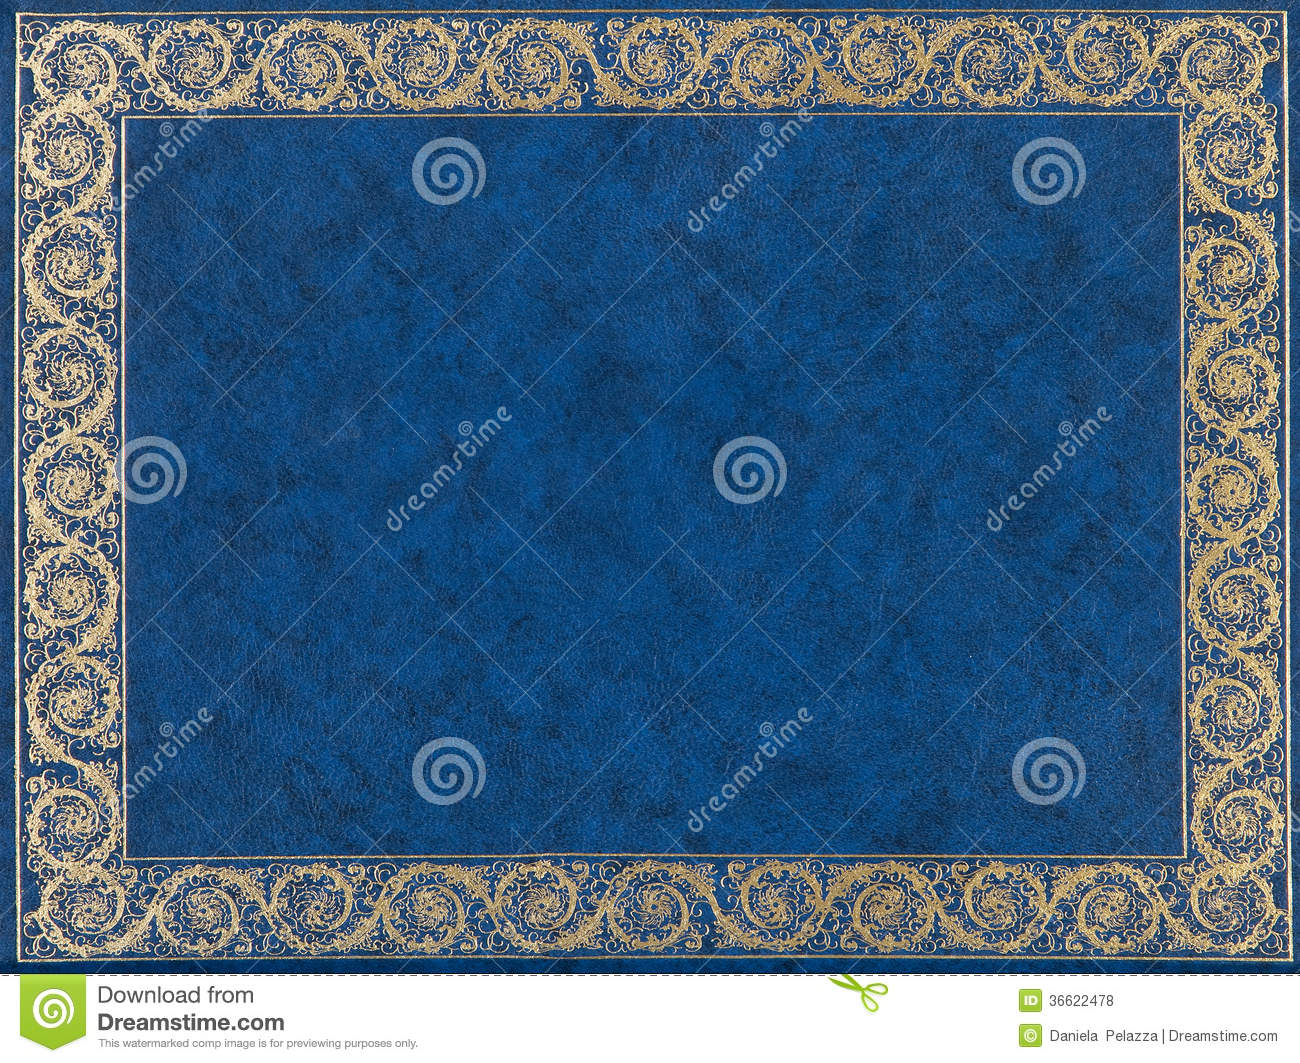 Blue Covered Book ~ Blue leather cover royalty free stock photos image